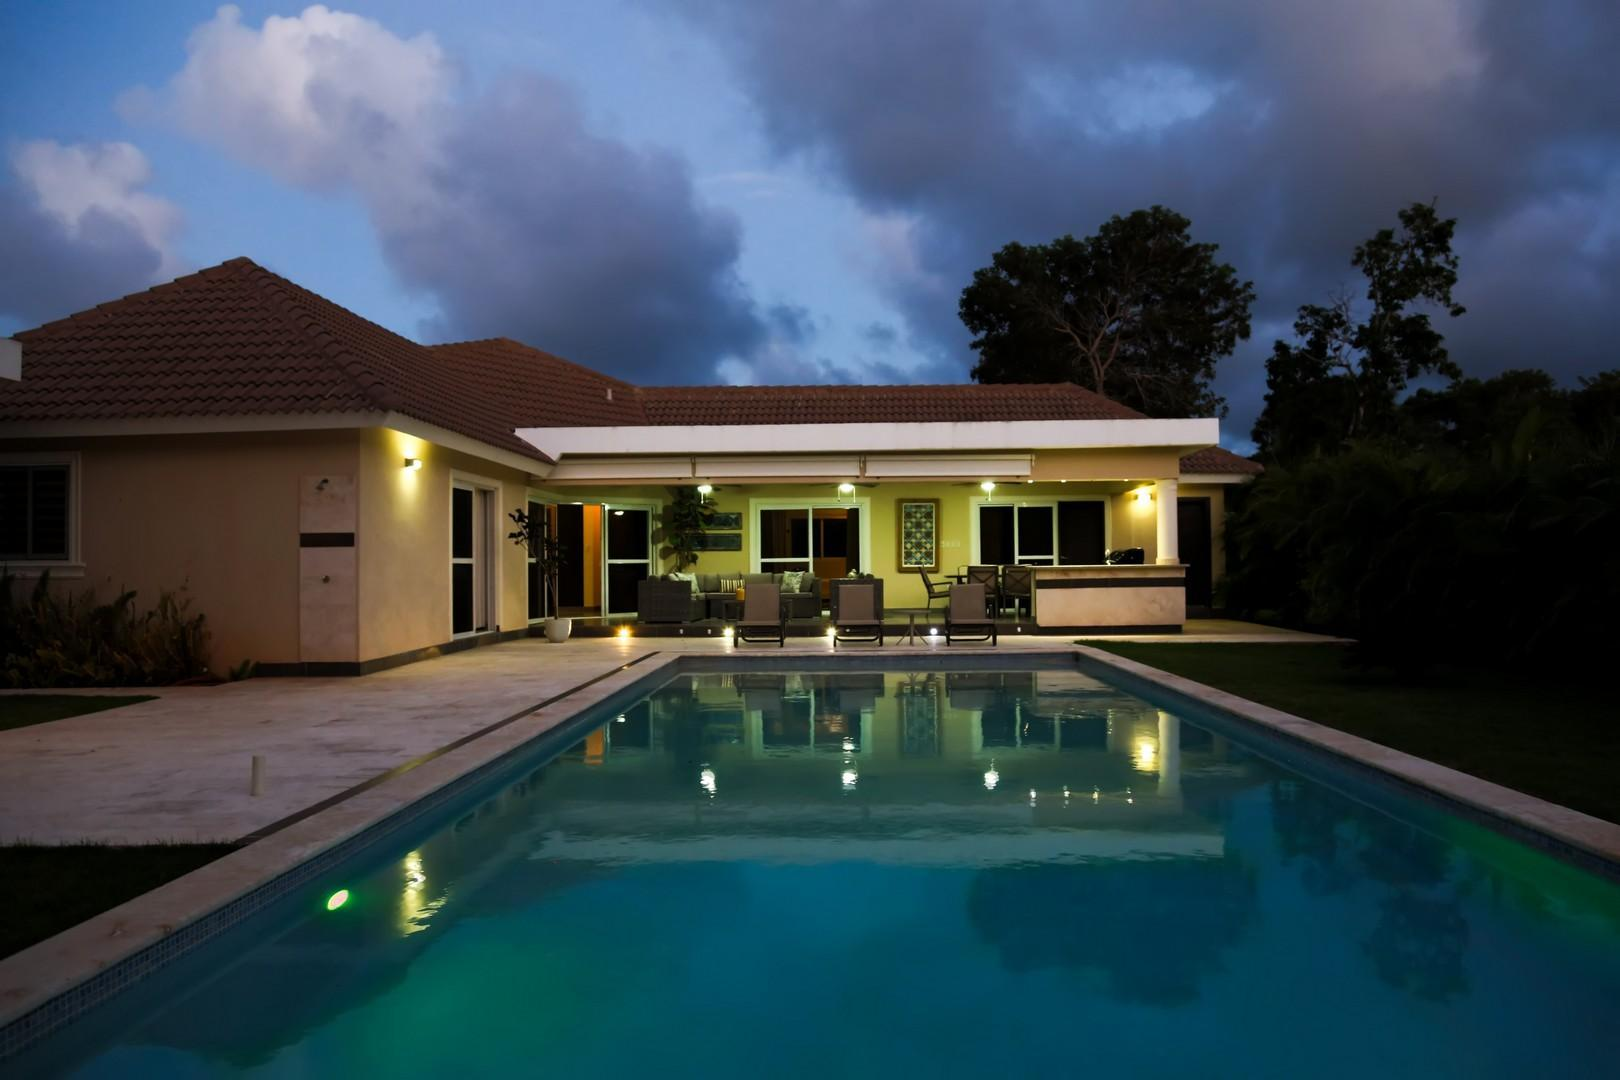 Villa equipped with an infinity edged pool in gated community